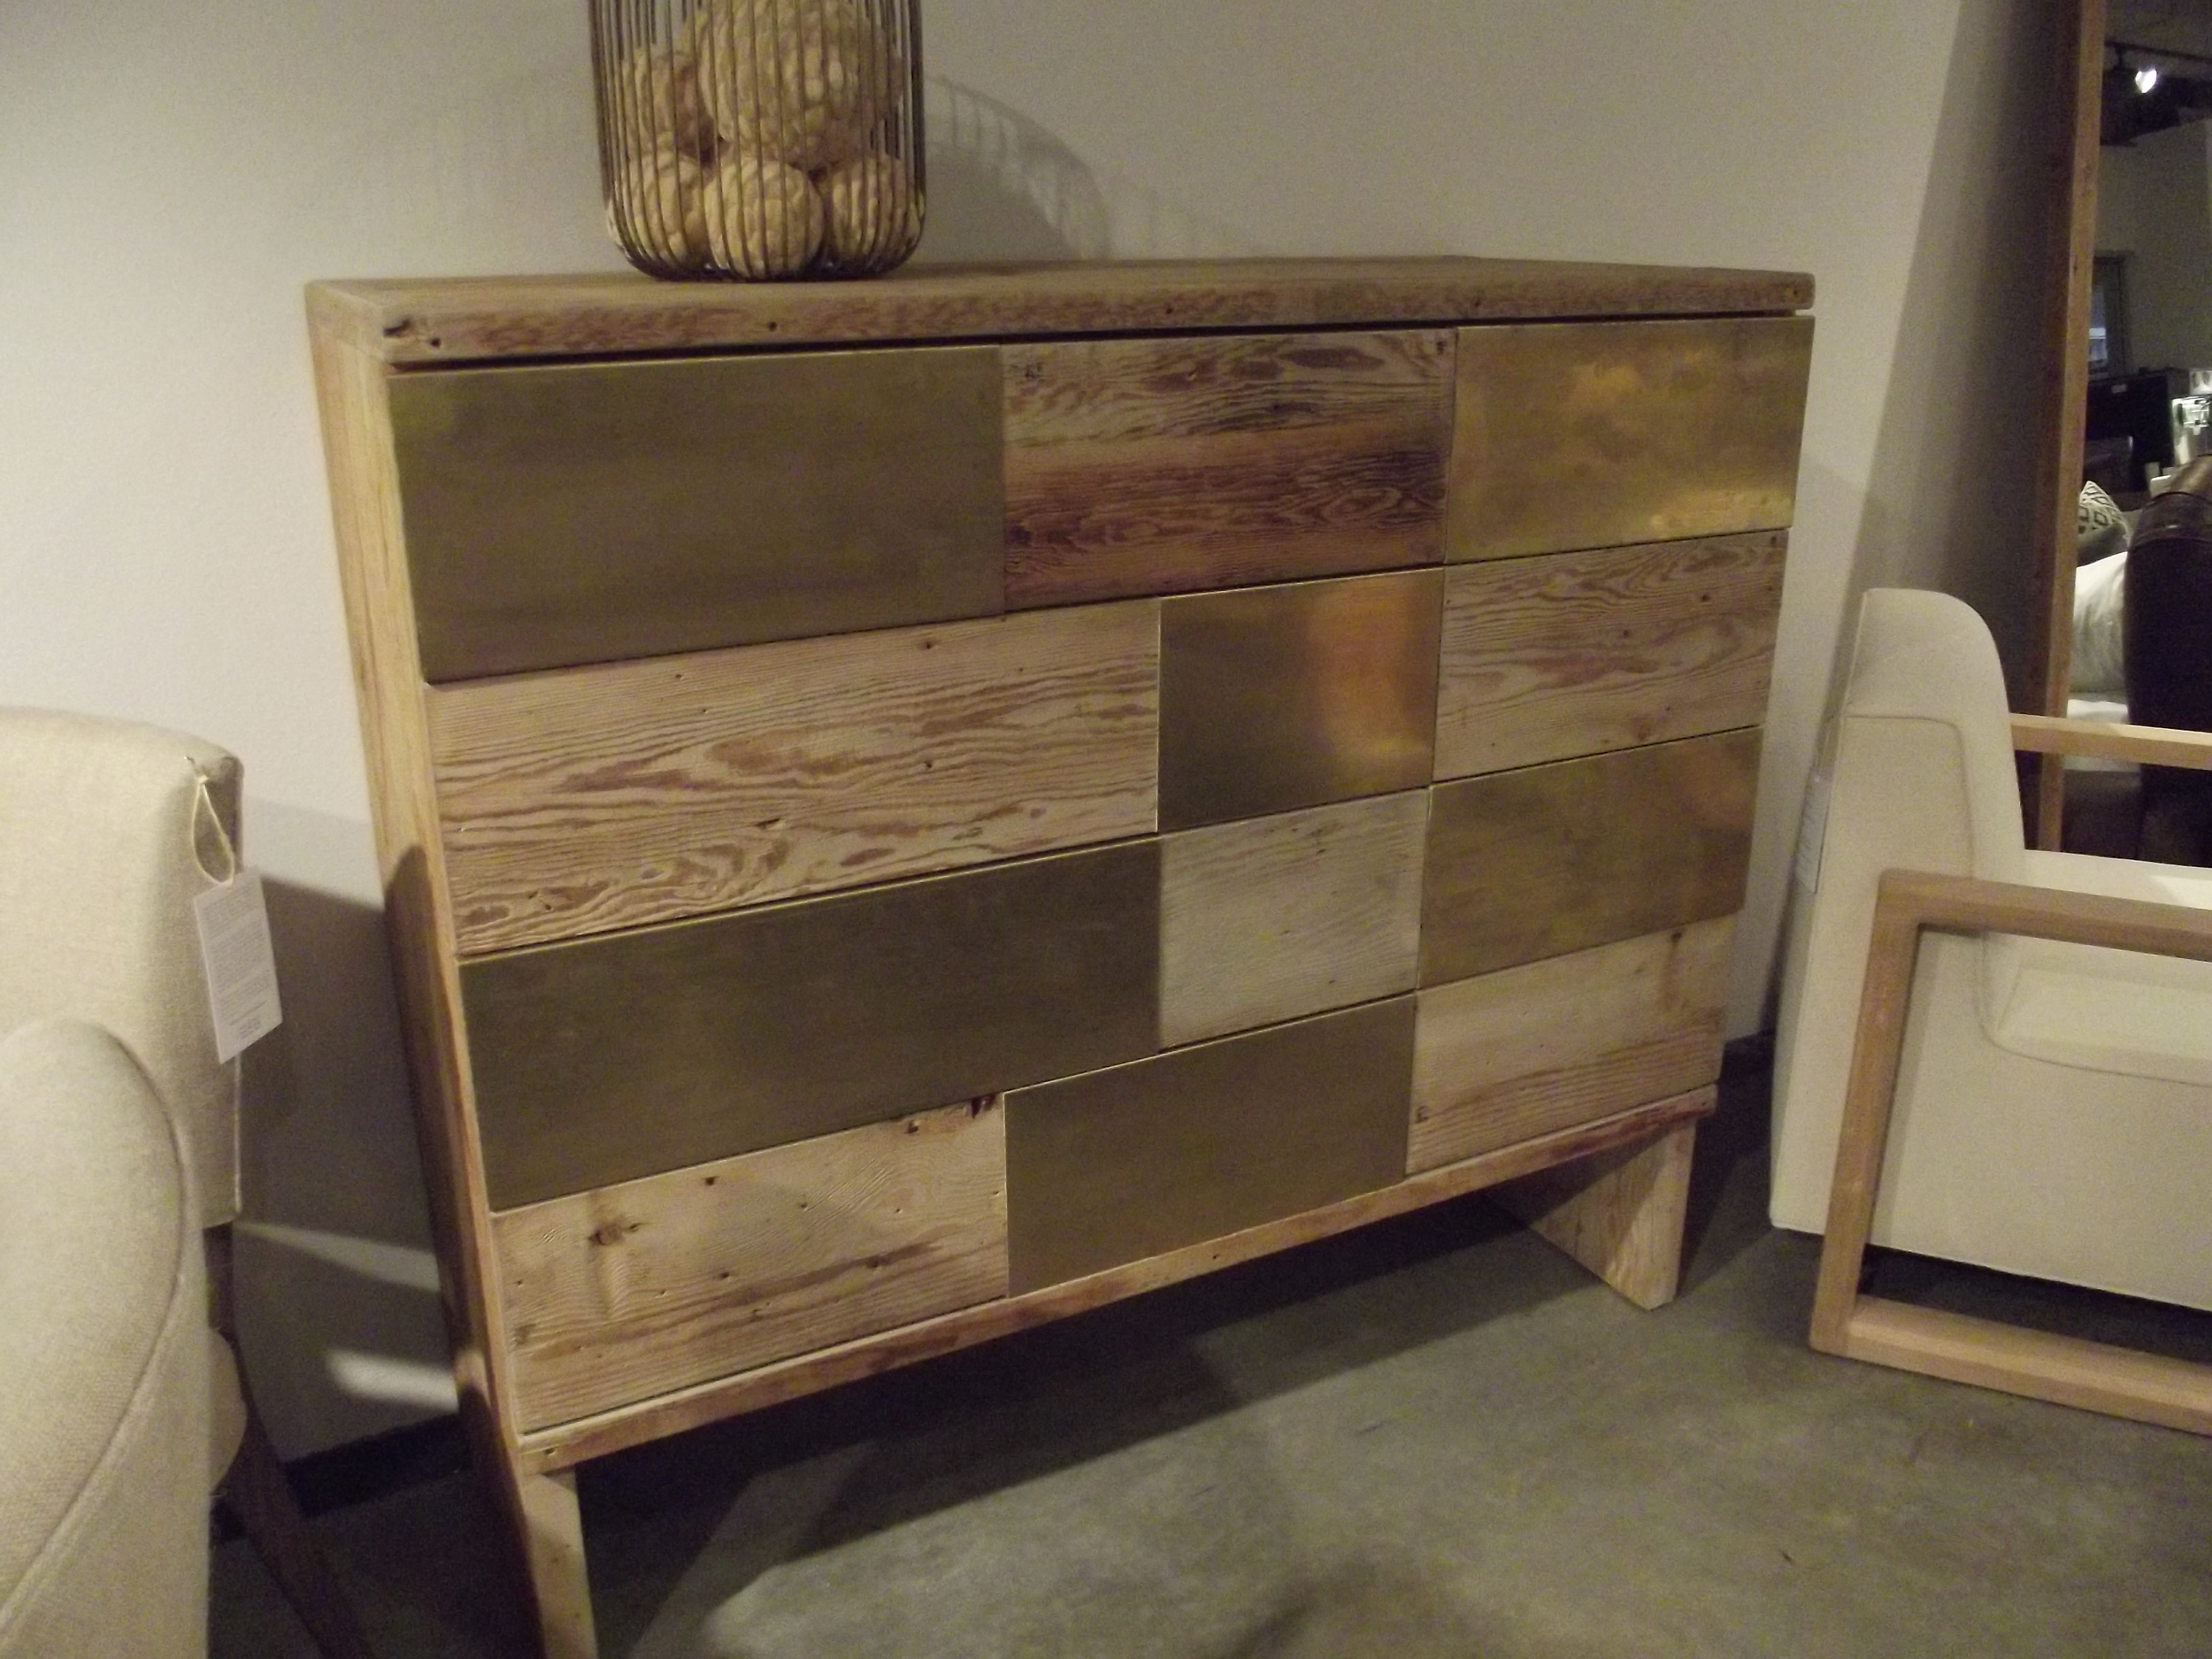 Natural wood mixed with the brass really warms the metal up on this chest!